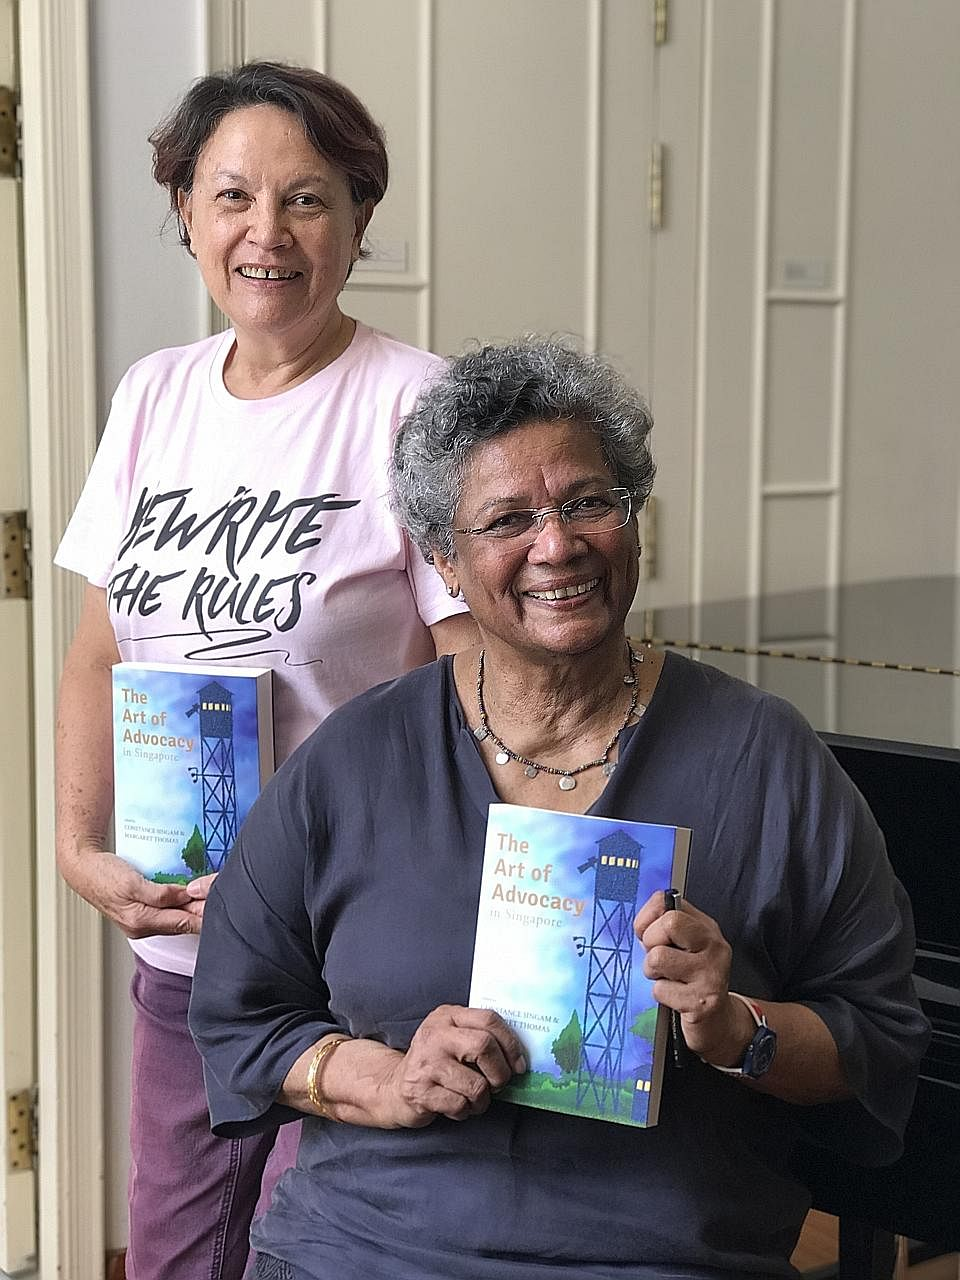 The Art Of Advocacy In Singapore was edited by former journalist Margaret Thomas (far left) and activist Constance Singam.